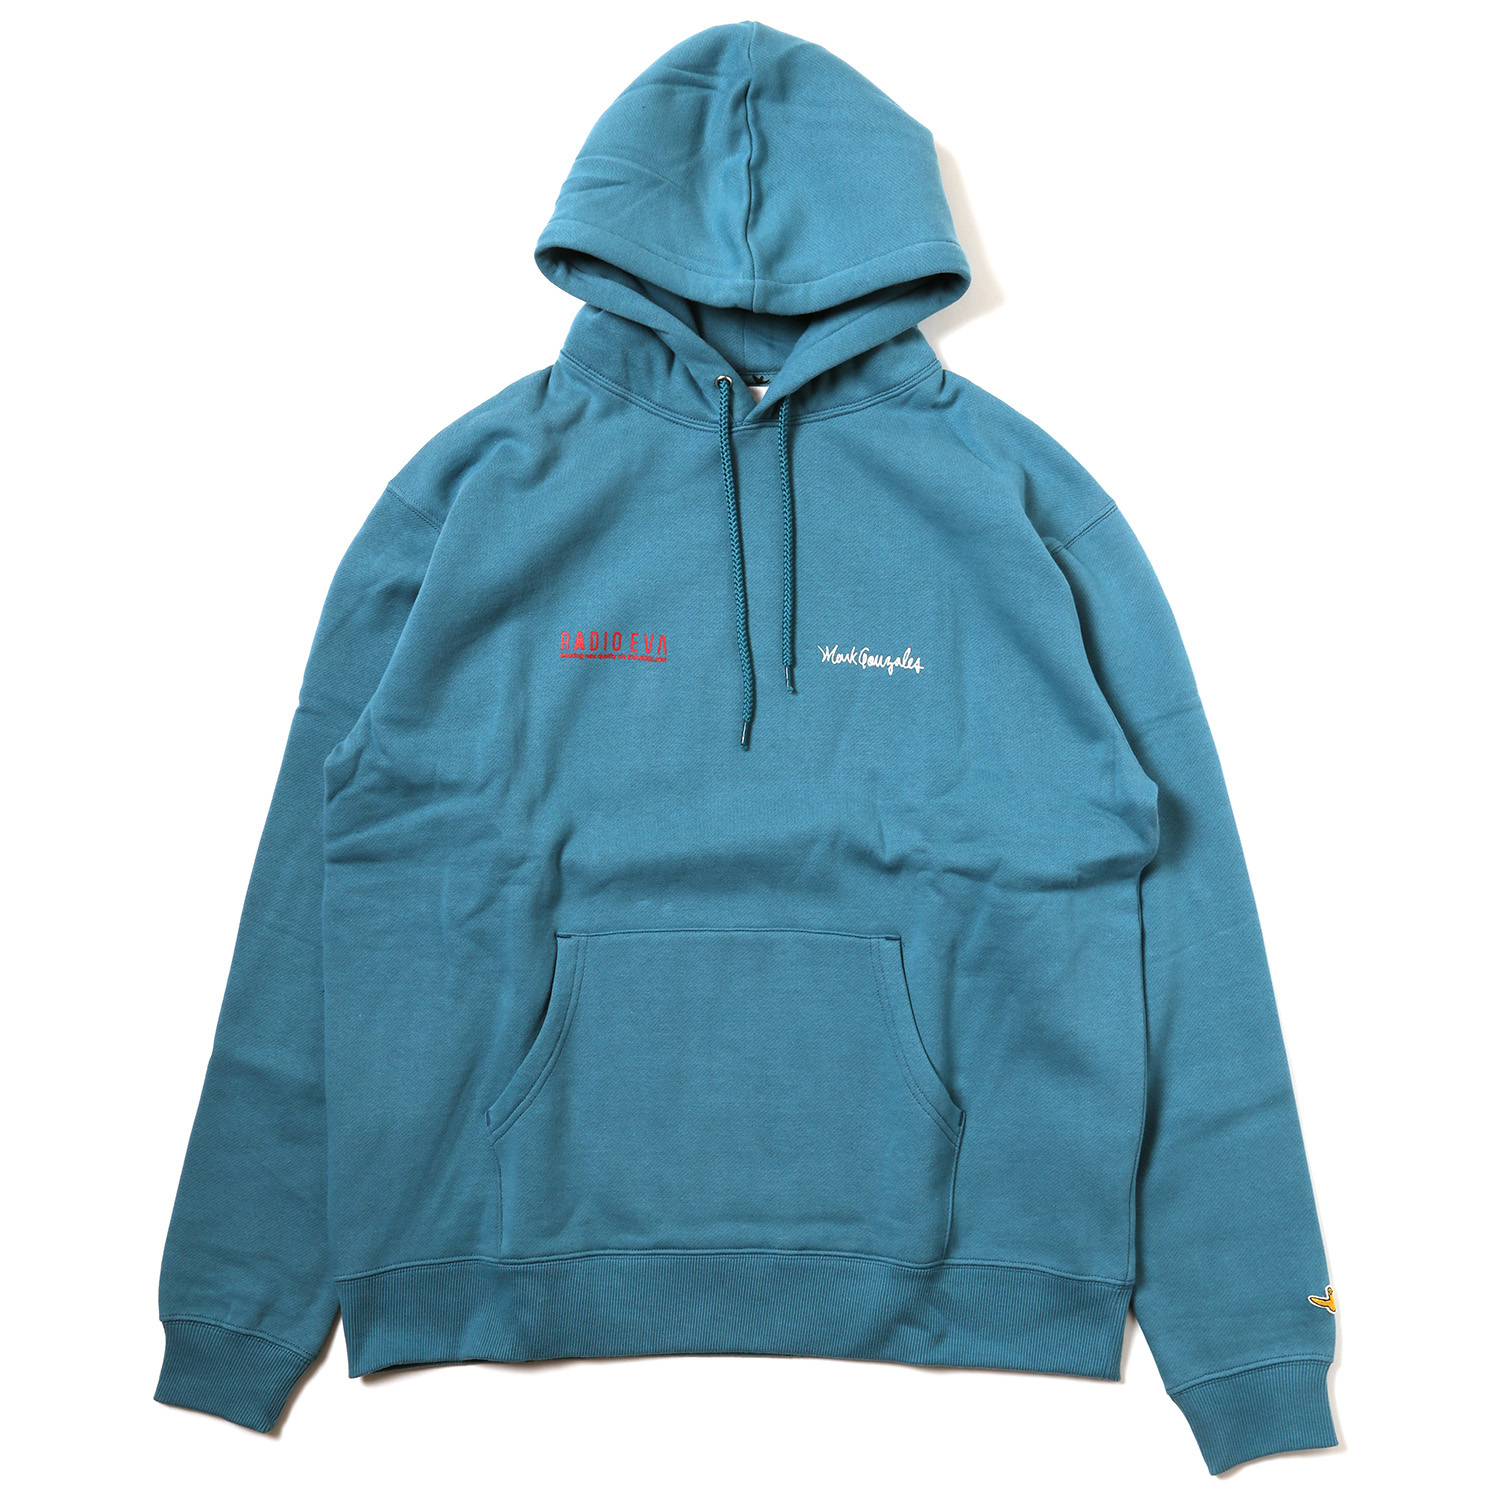 Kaworu Pt. HOODIE by MARK GONZALES (EMERALD)